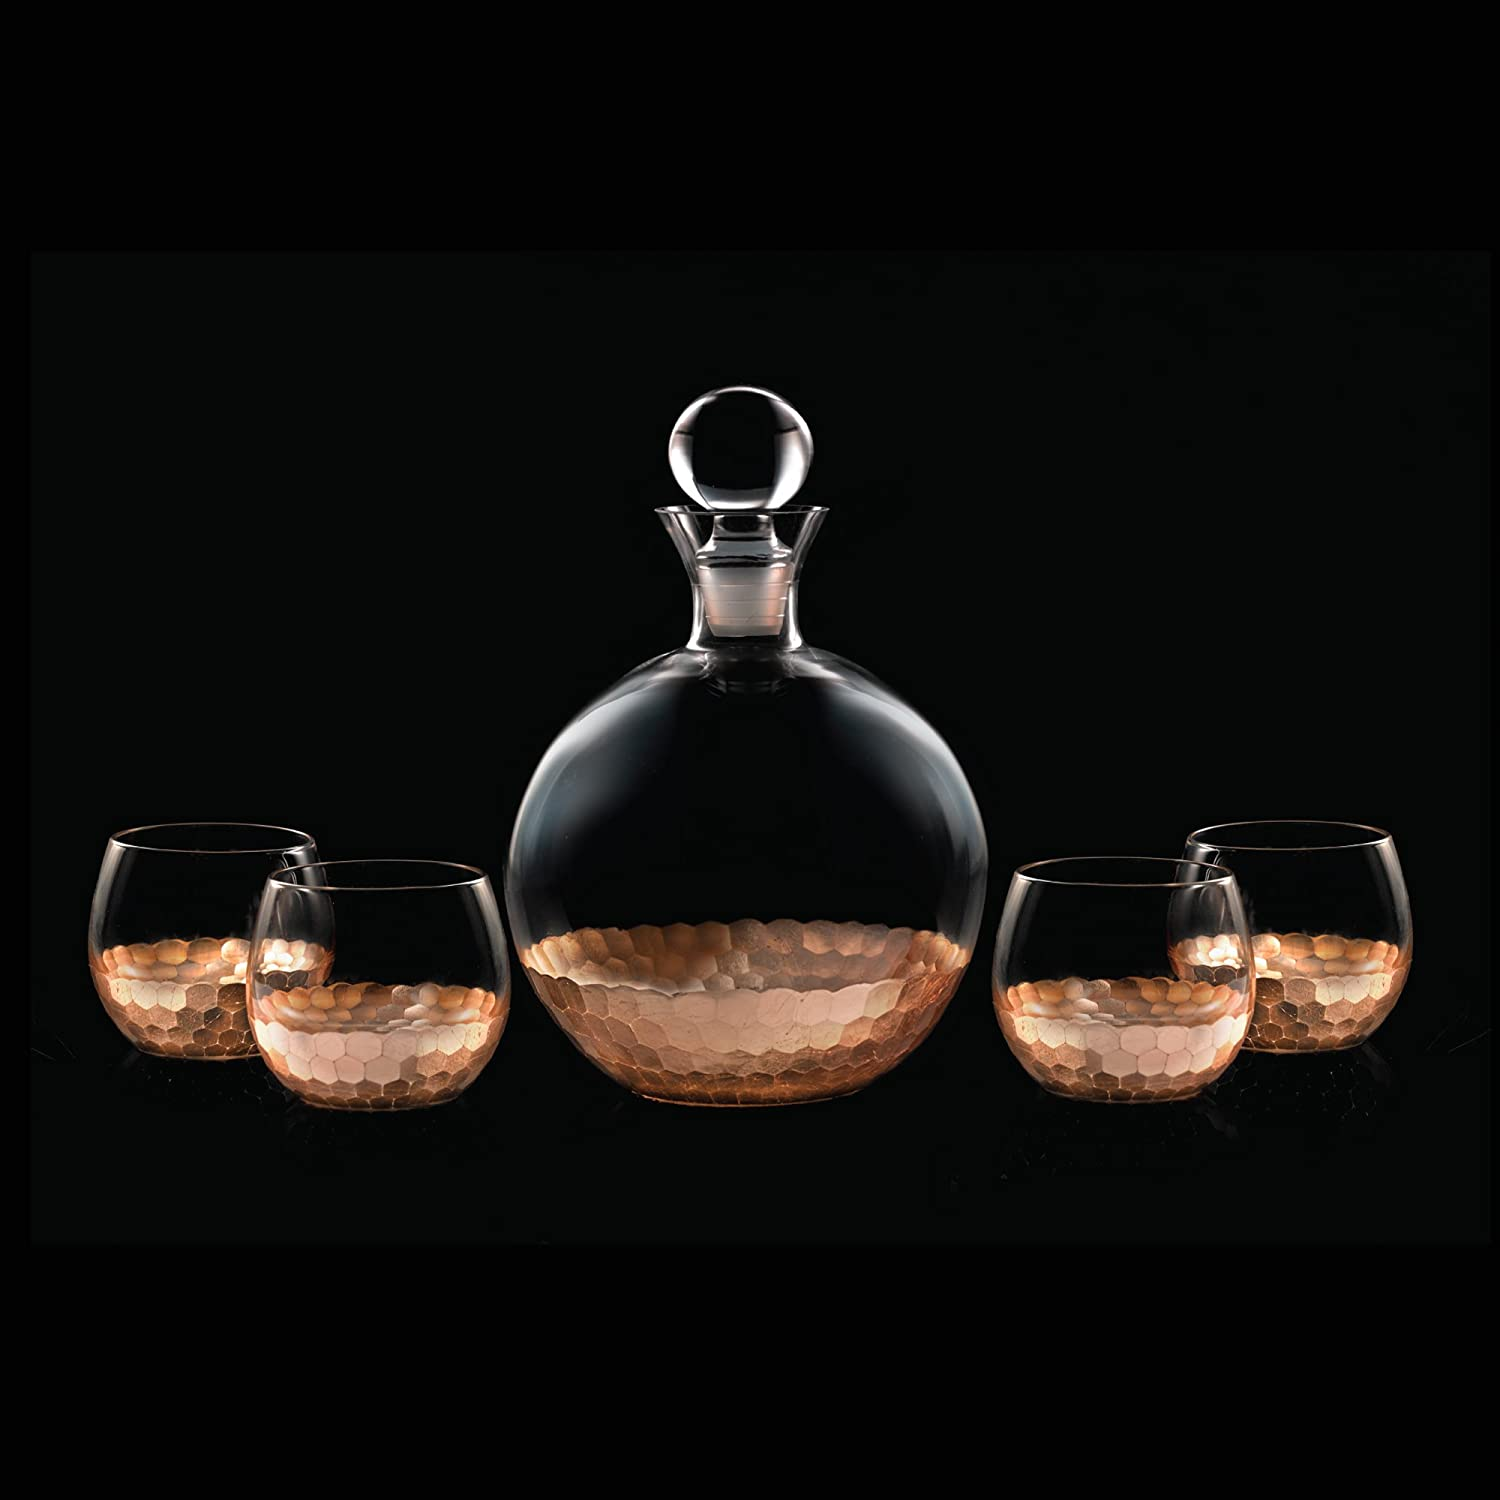 Fitz and Floyd Daphne 5 Piece Decanter Set, Copper | amazon.com